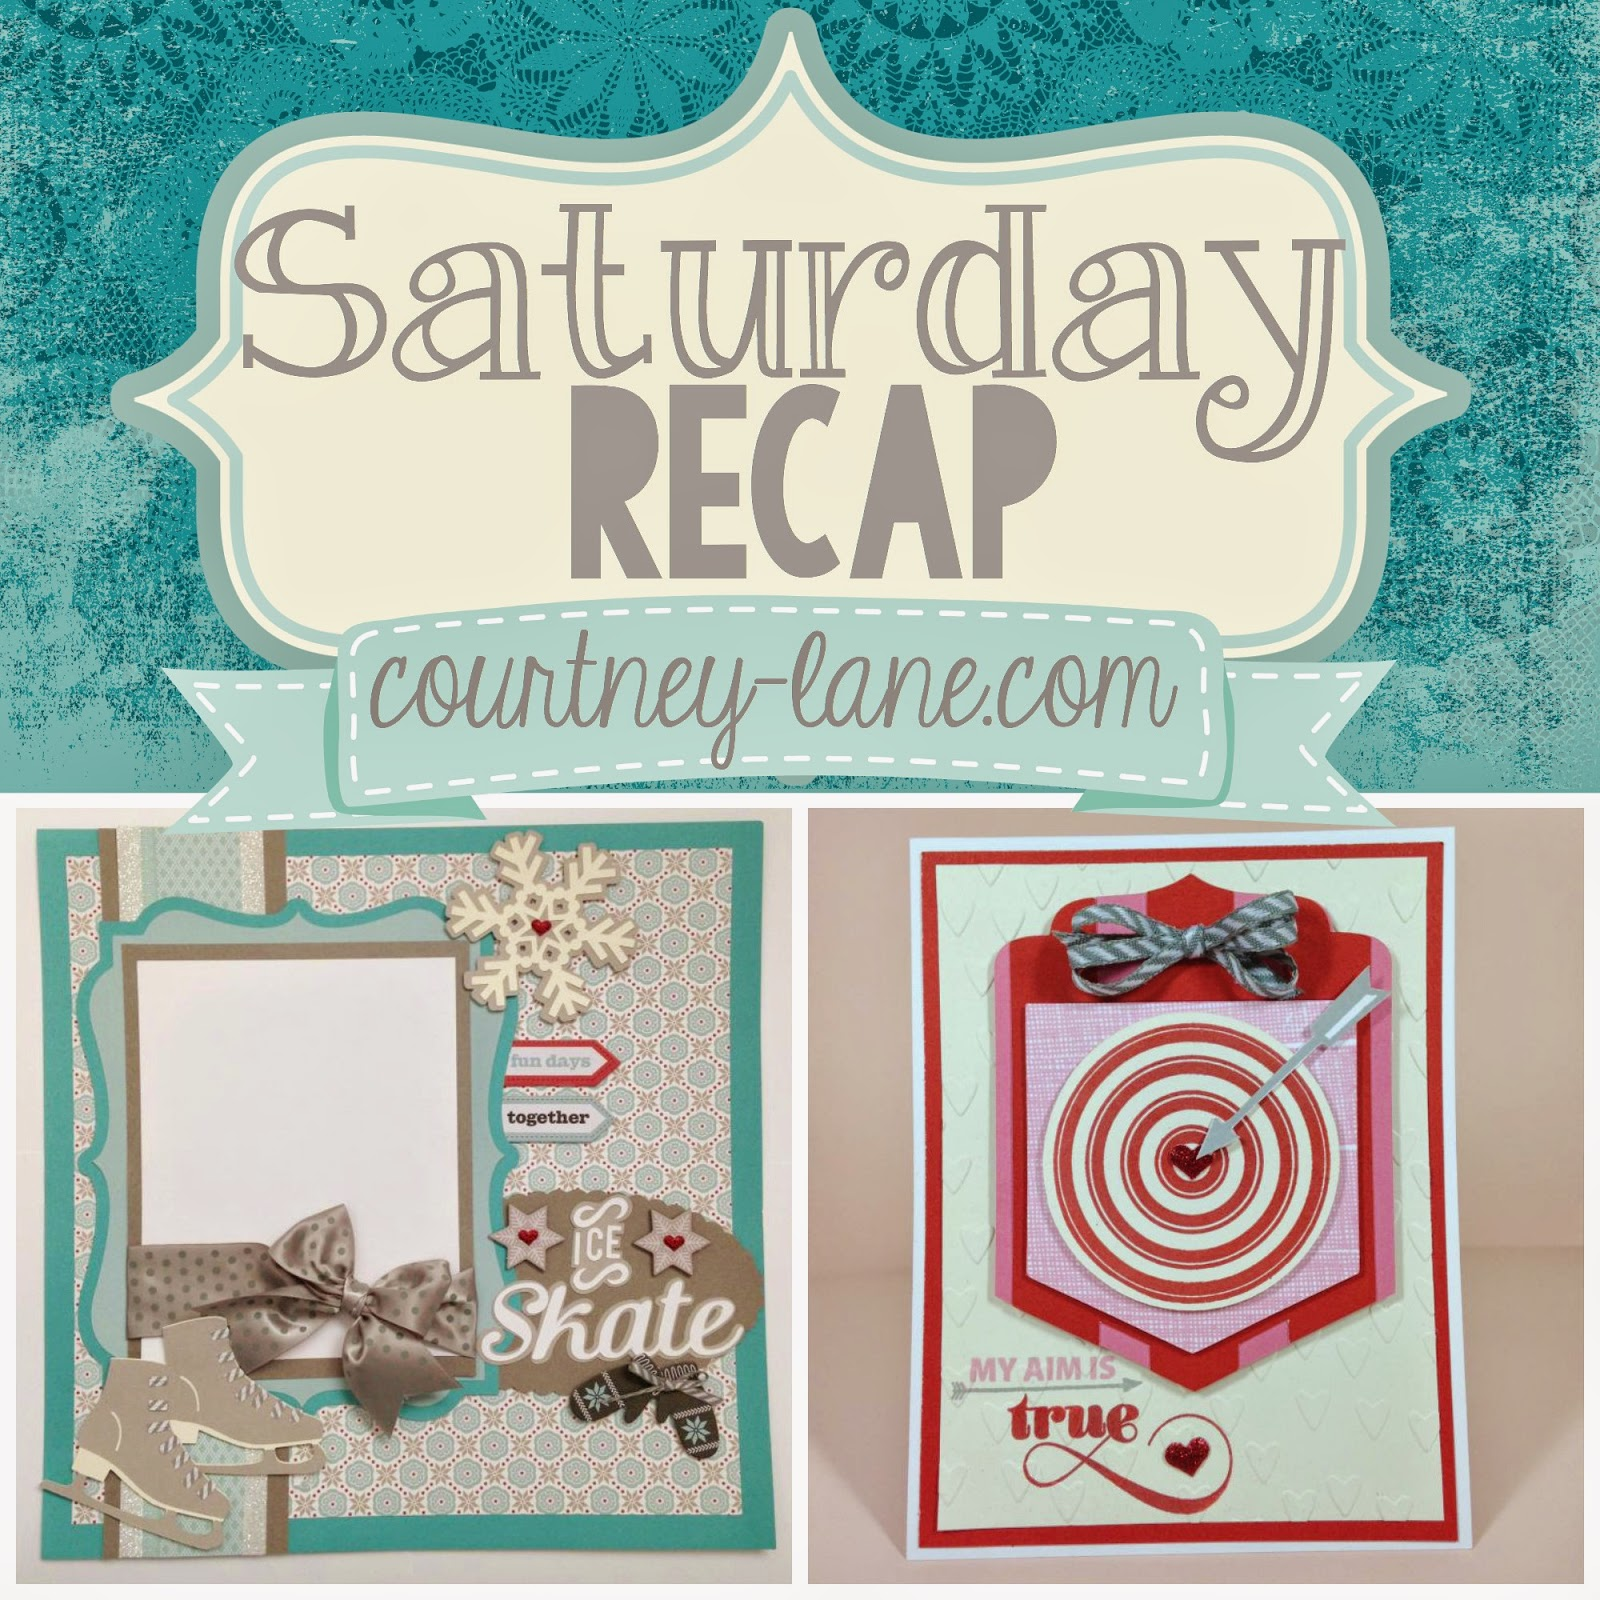 Courtney Lane Designs Saturday Recap